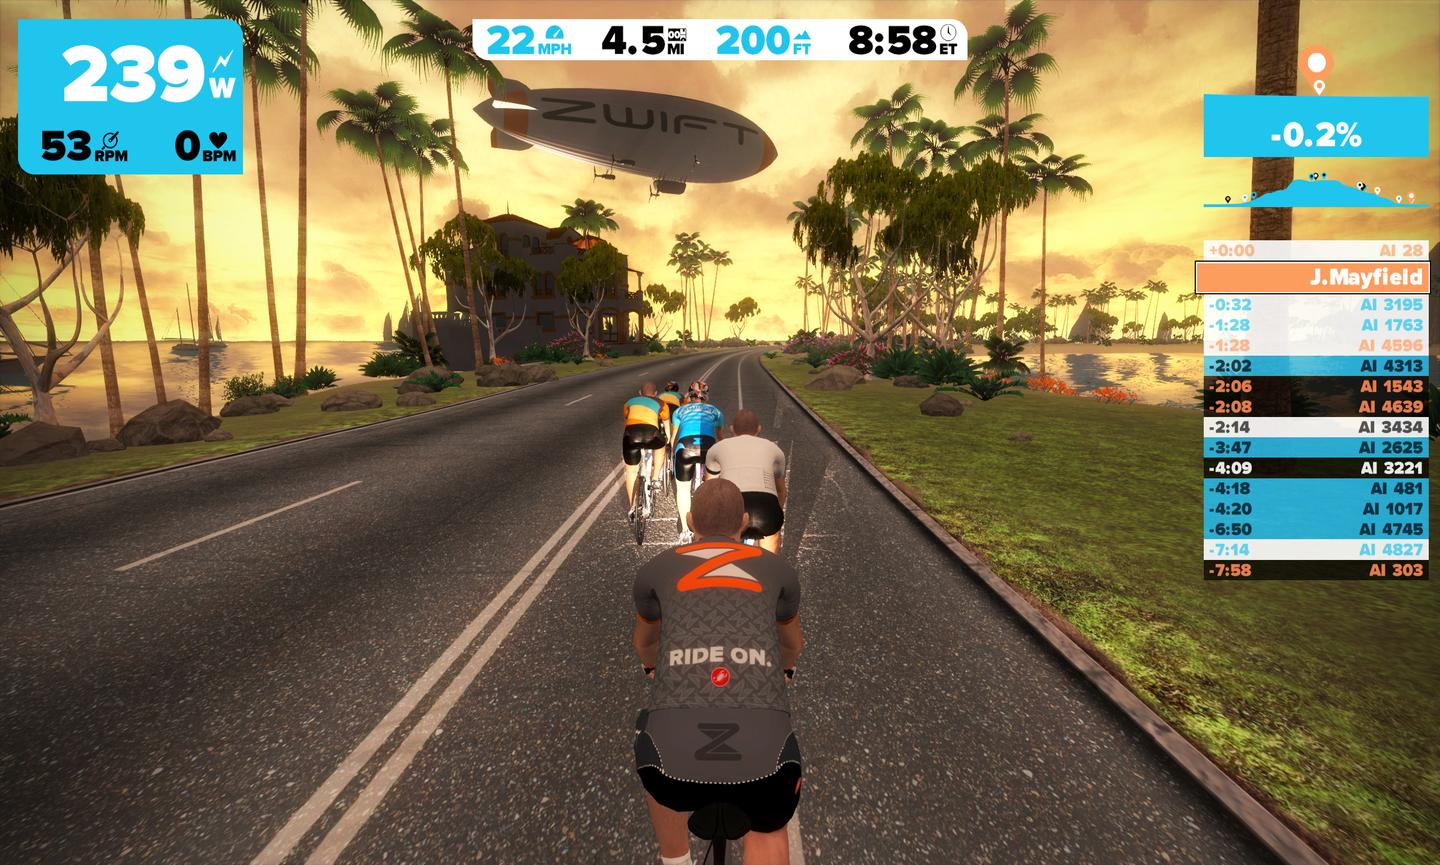 It might not be the actual open road, but staring at a Zwift world like this might beat just watching a TV while you train this winter